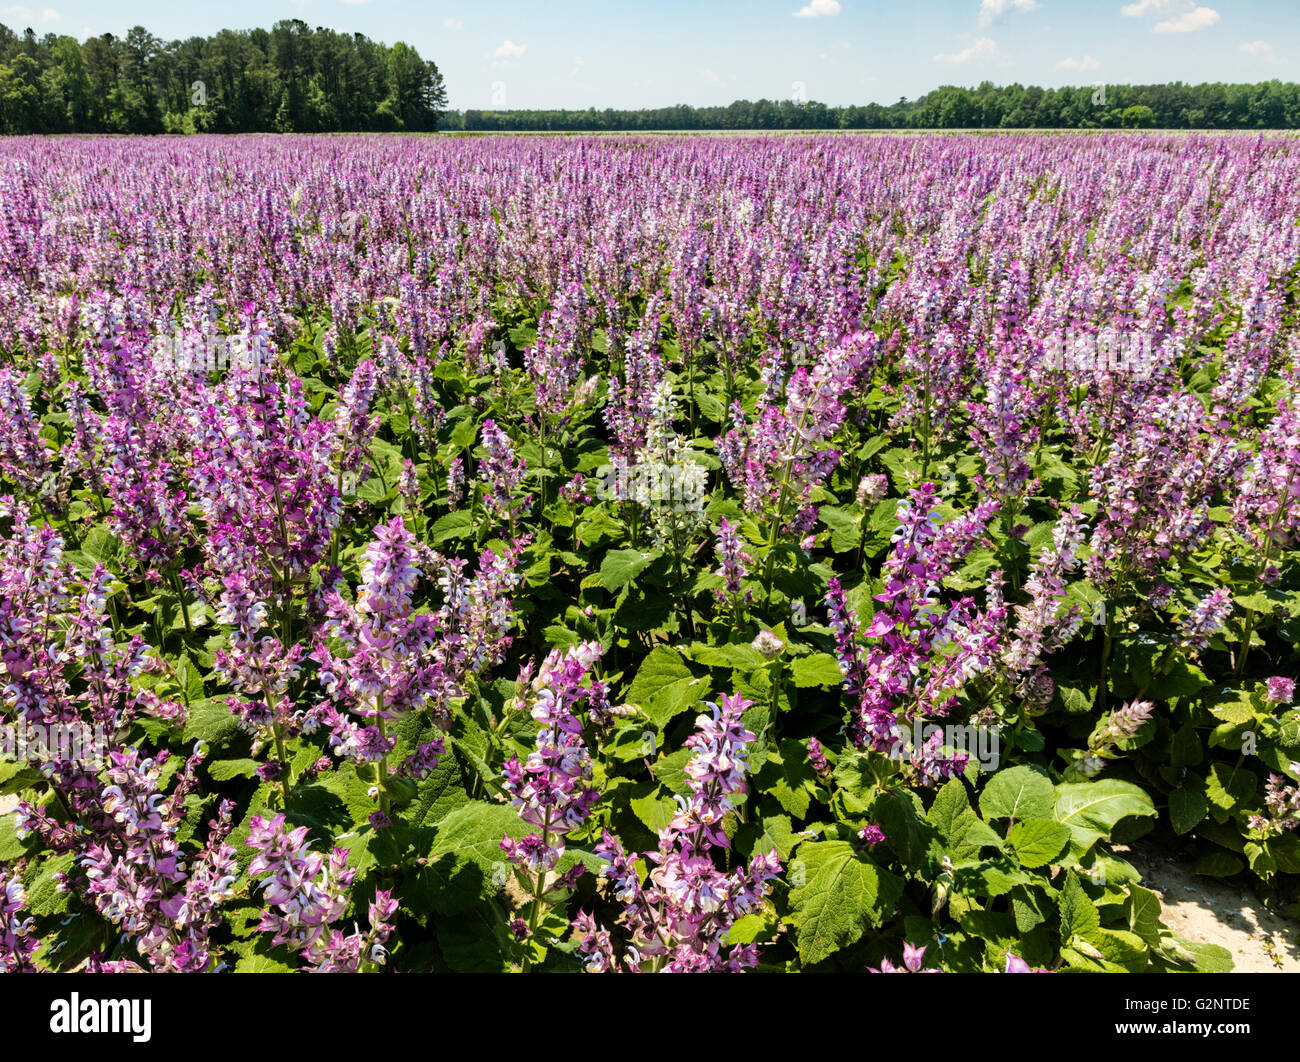 Field of lavender-colored Clary Sage (Salvia sclarea) in Robersonville, Martin County, NC USA - Stock Image